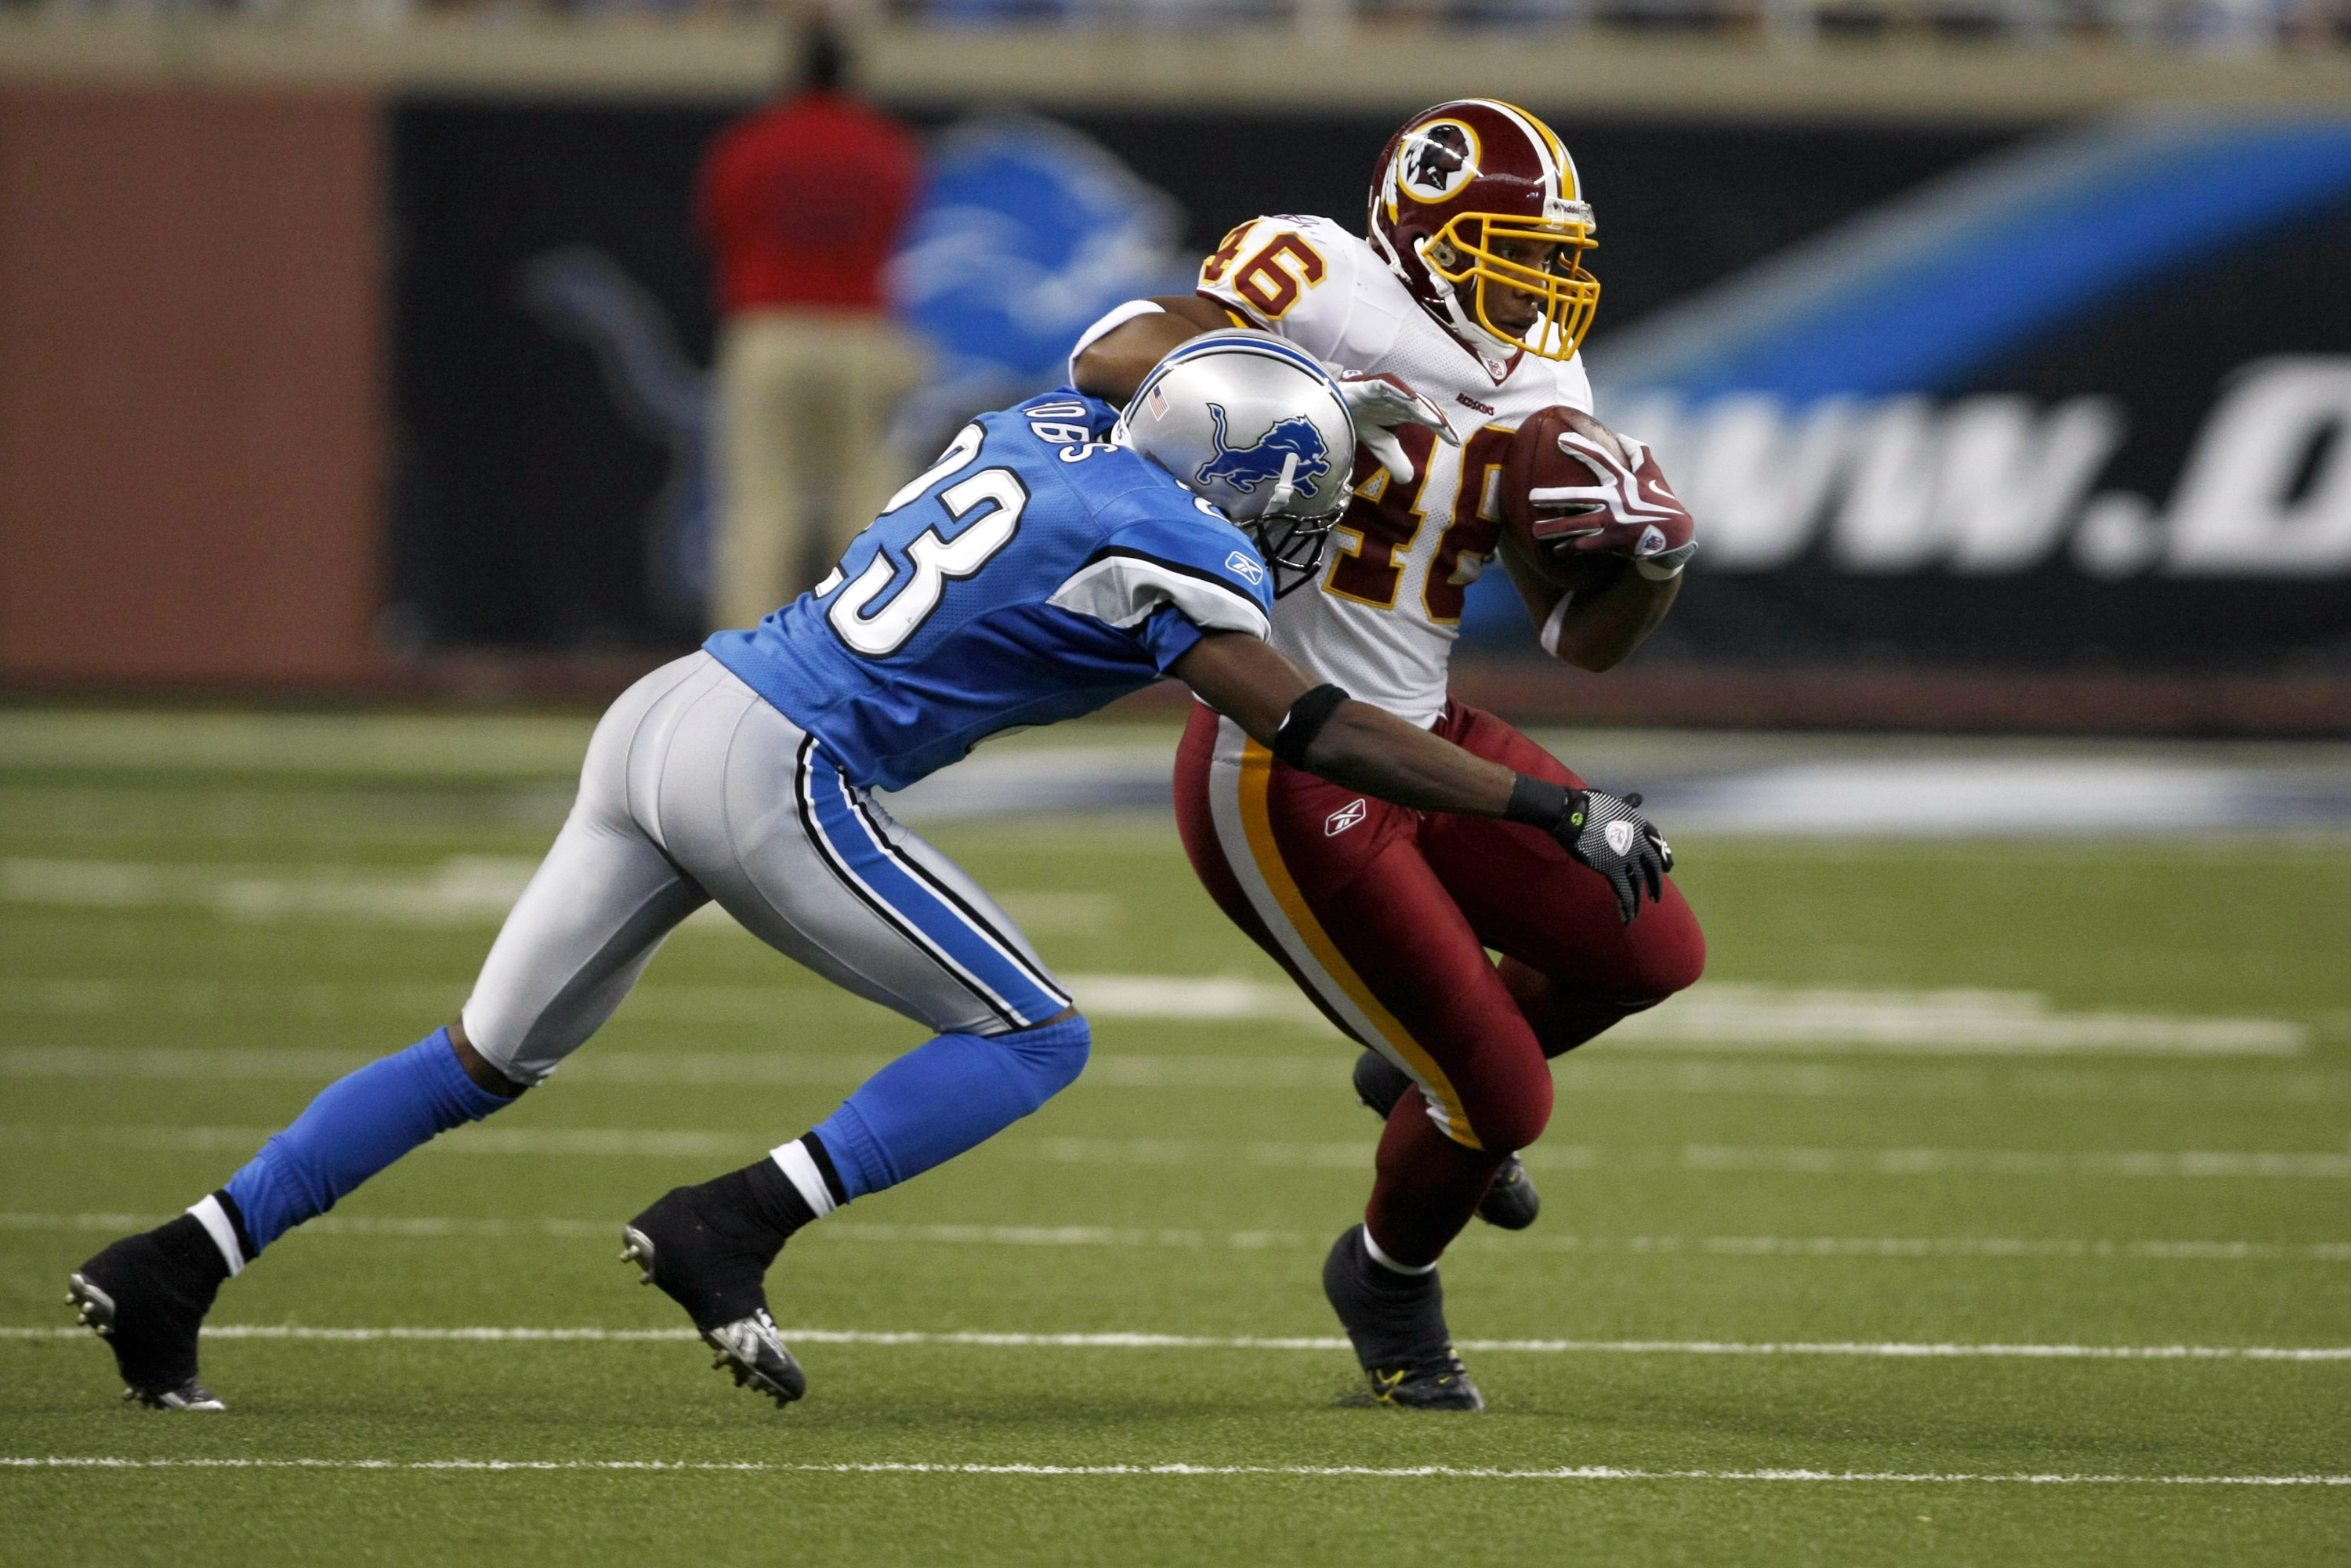 DETROIT, MI - SEPTEMBER 27: Running back Ladell Betts #46 of the Washington Redskins runs with the football as he is tackled by Kevin Hobbs #23 of the Detroit Lions at Ford Field on September 27, 2009 in Detroit, Michigan. The Lions defeated the Redskins